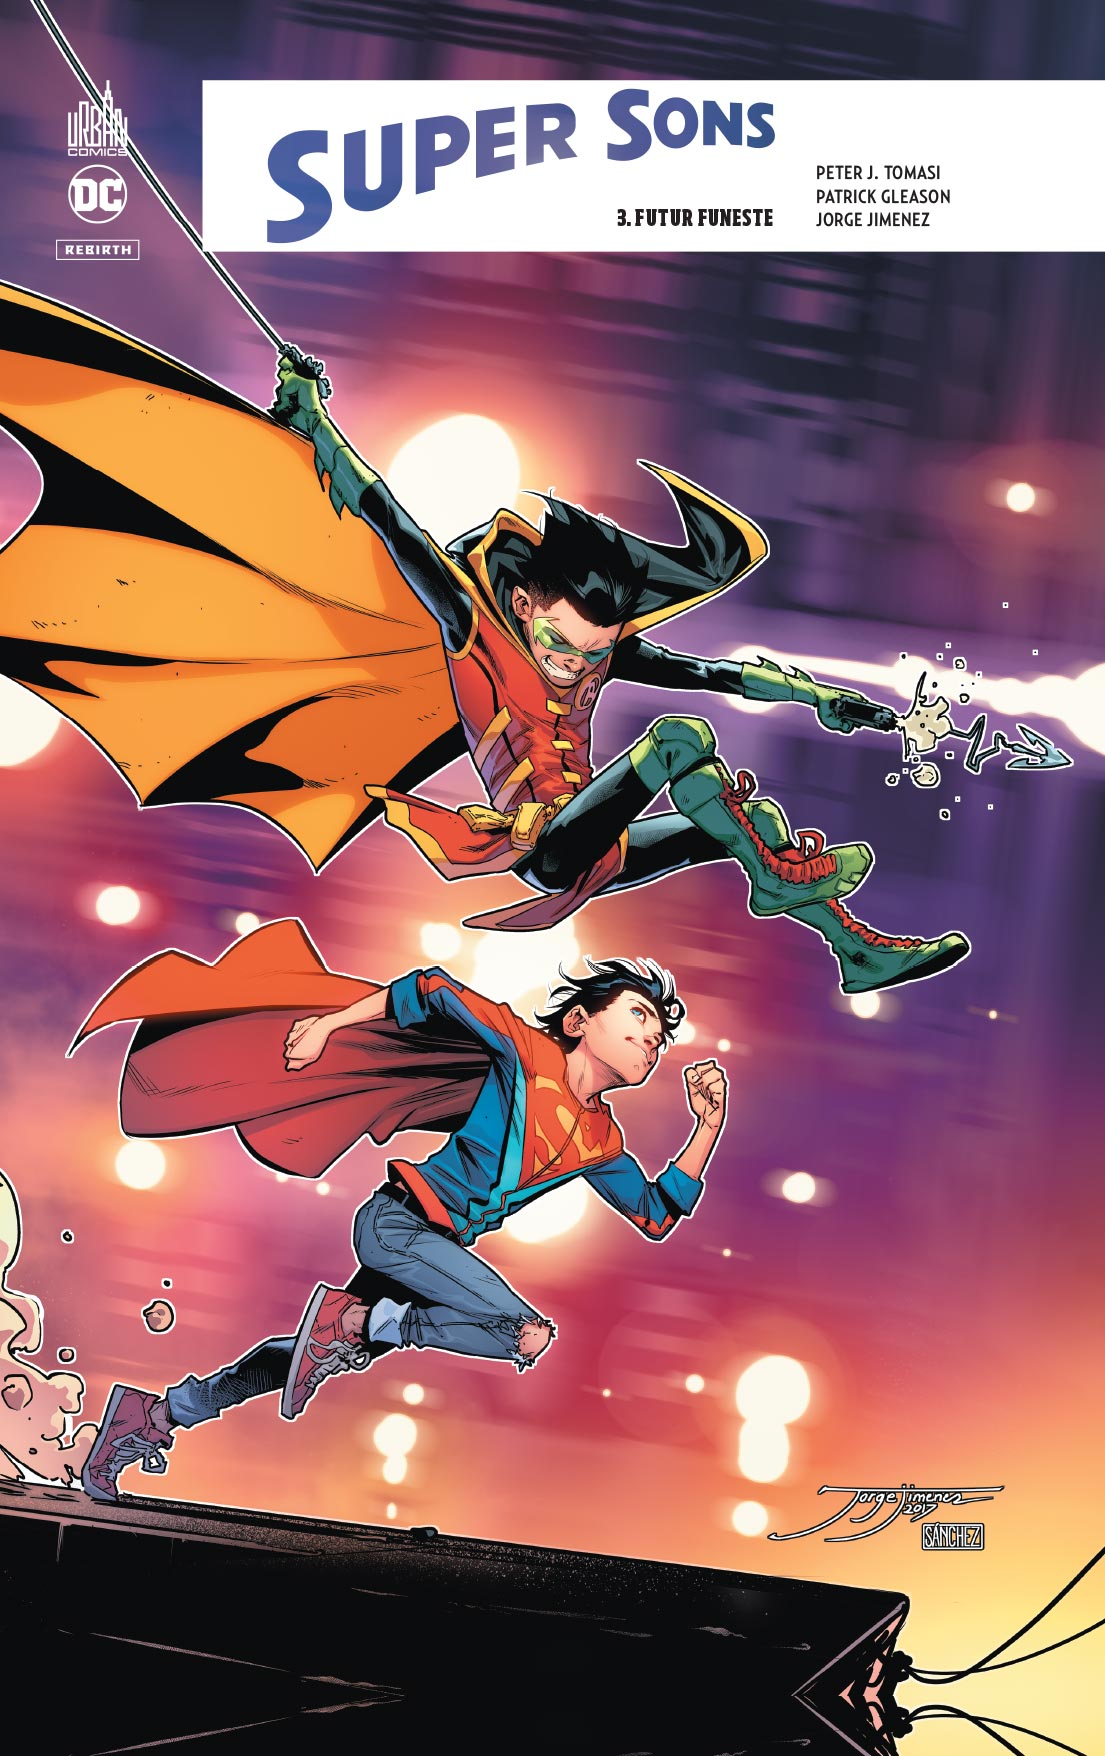 Super Sons 3 - Futur funeste